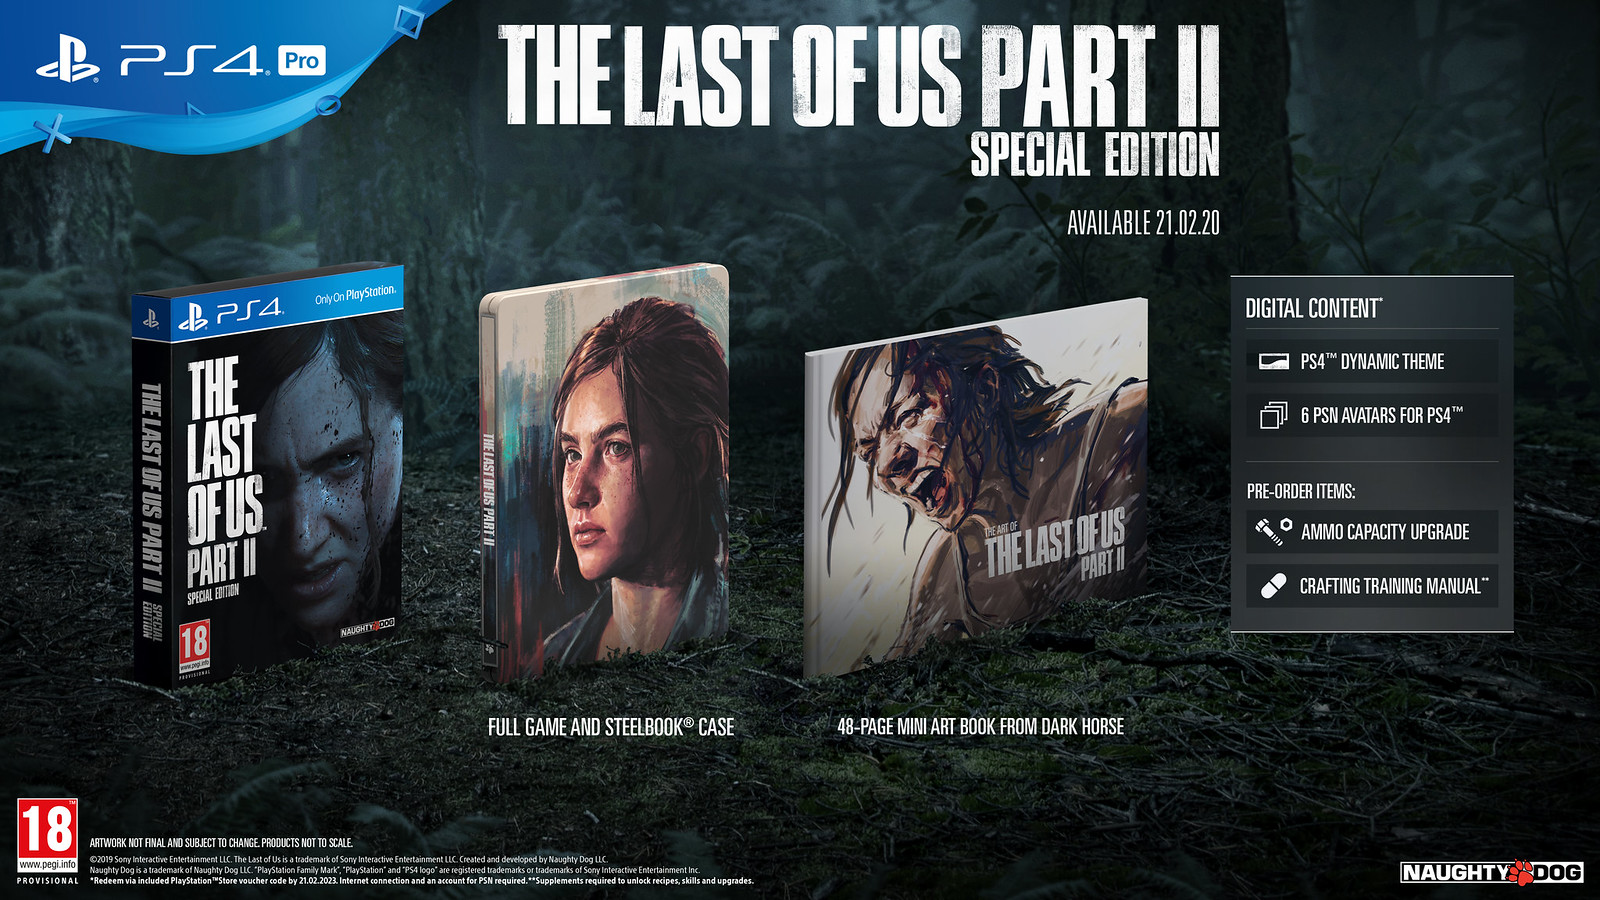 Playstation Free Games February 2020.The Last Of Us Part Ii Release Date Confirmed All Special